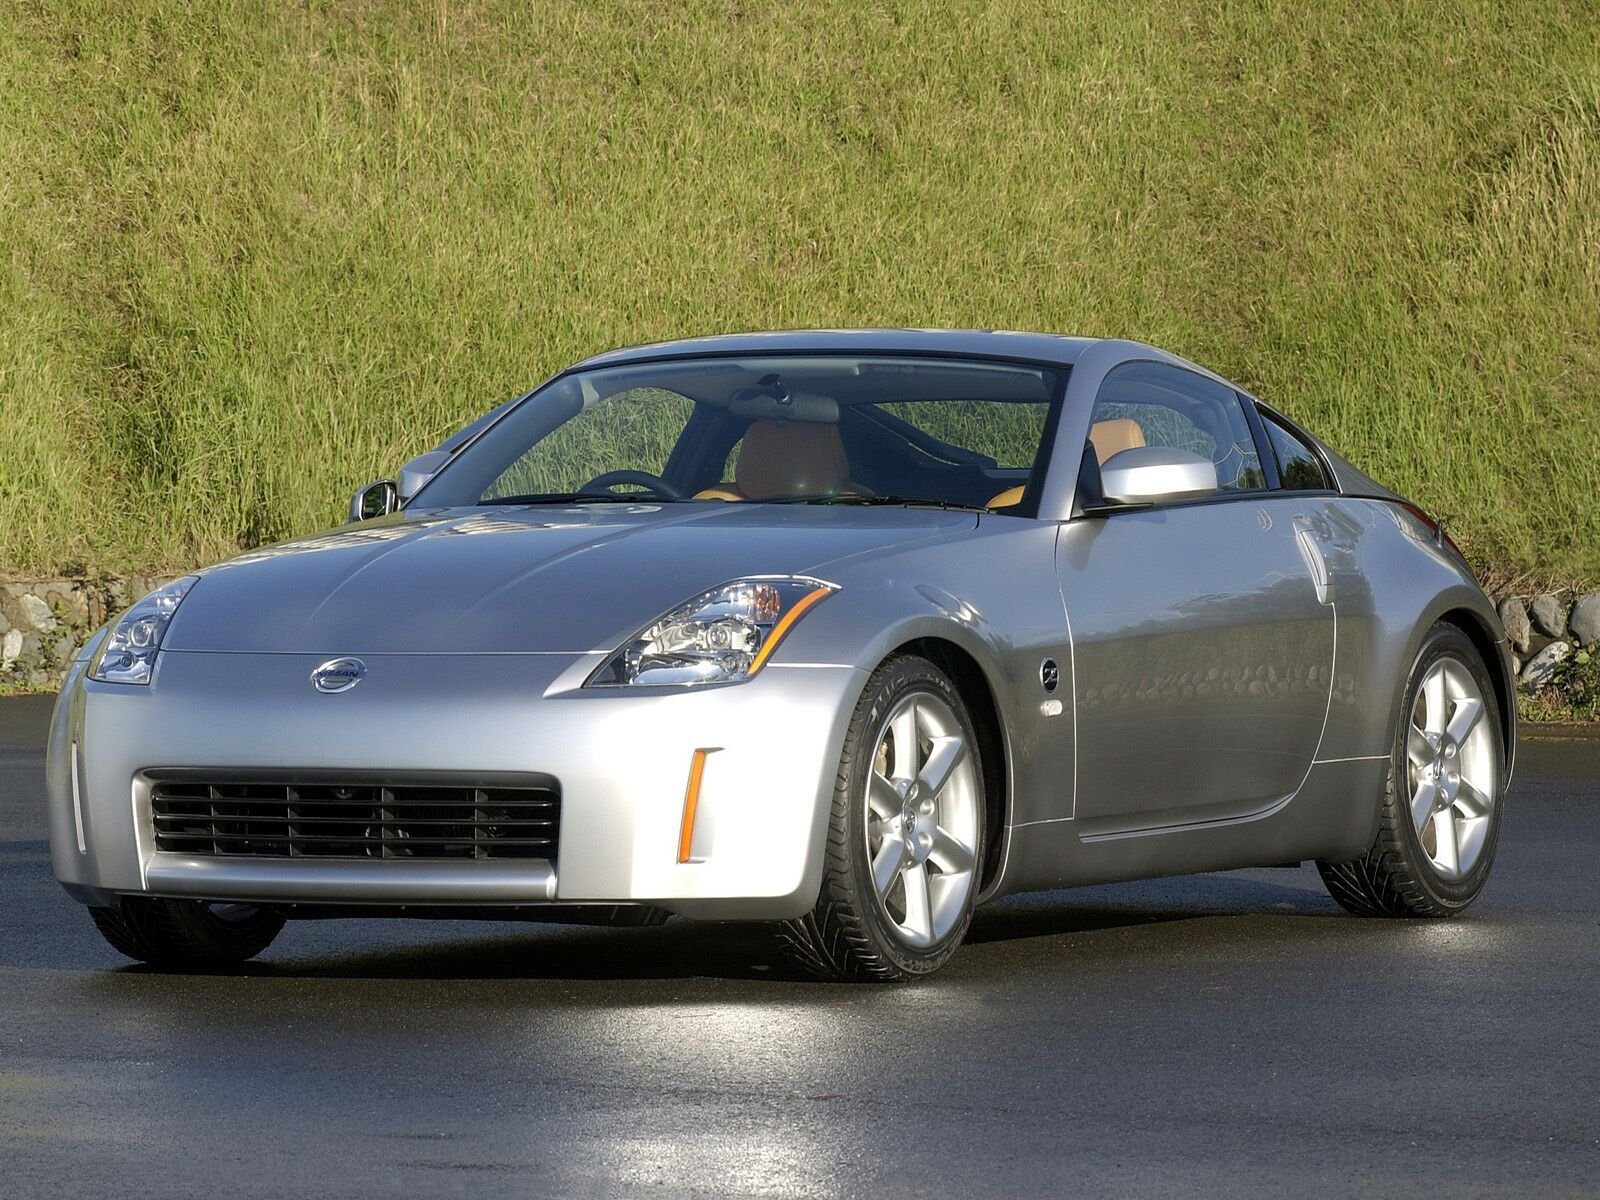 2005 nissan 350z picture 26658 car review top speed. Black Bedroom Furniture Sets. Home Design Ideas